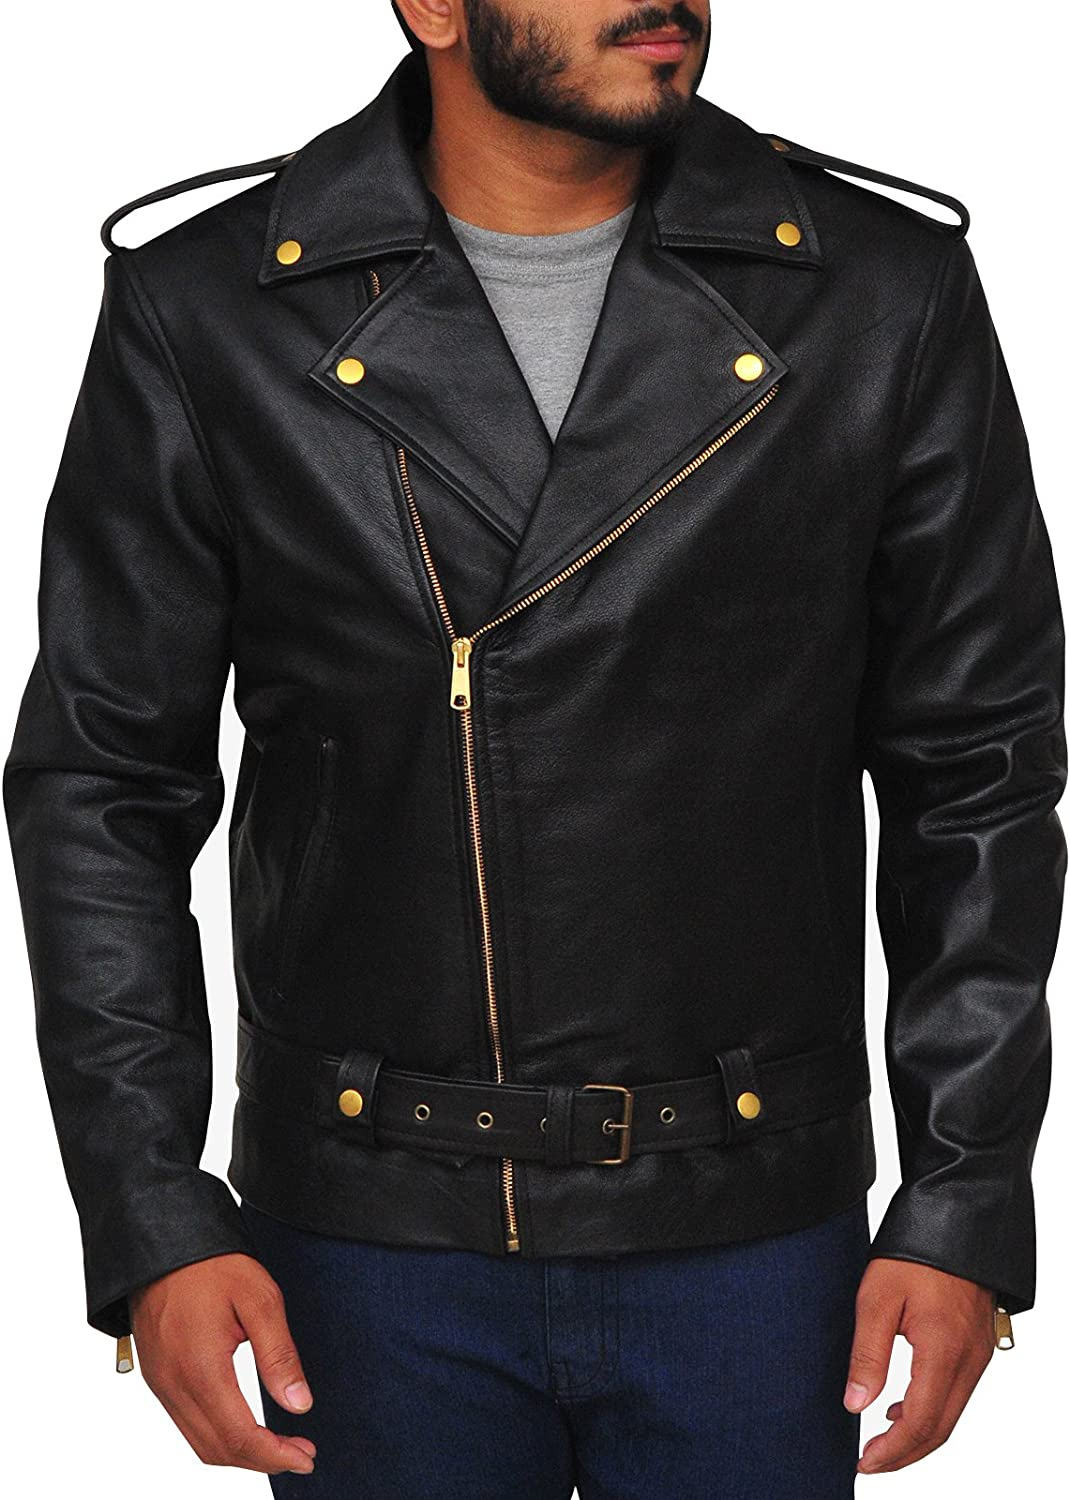 7a66cb6ae22 TrendHoop Allaric Allaric Allaric Men's Motorcycle Premium Natural Buffalo  Leather Slim Fit Jacket 422d3e